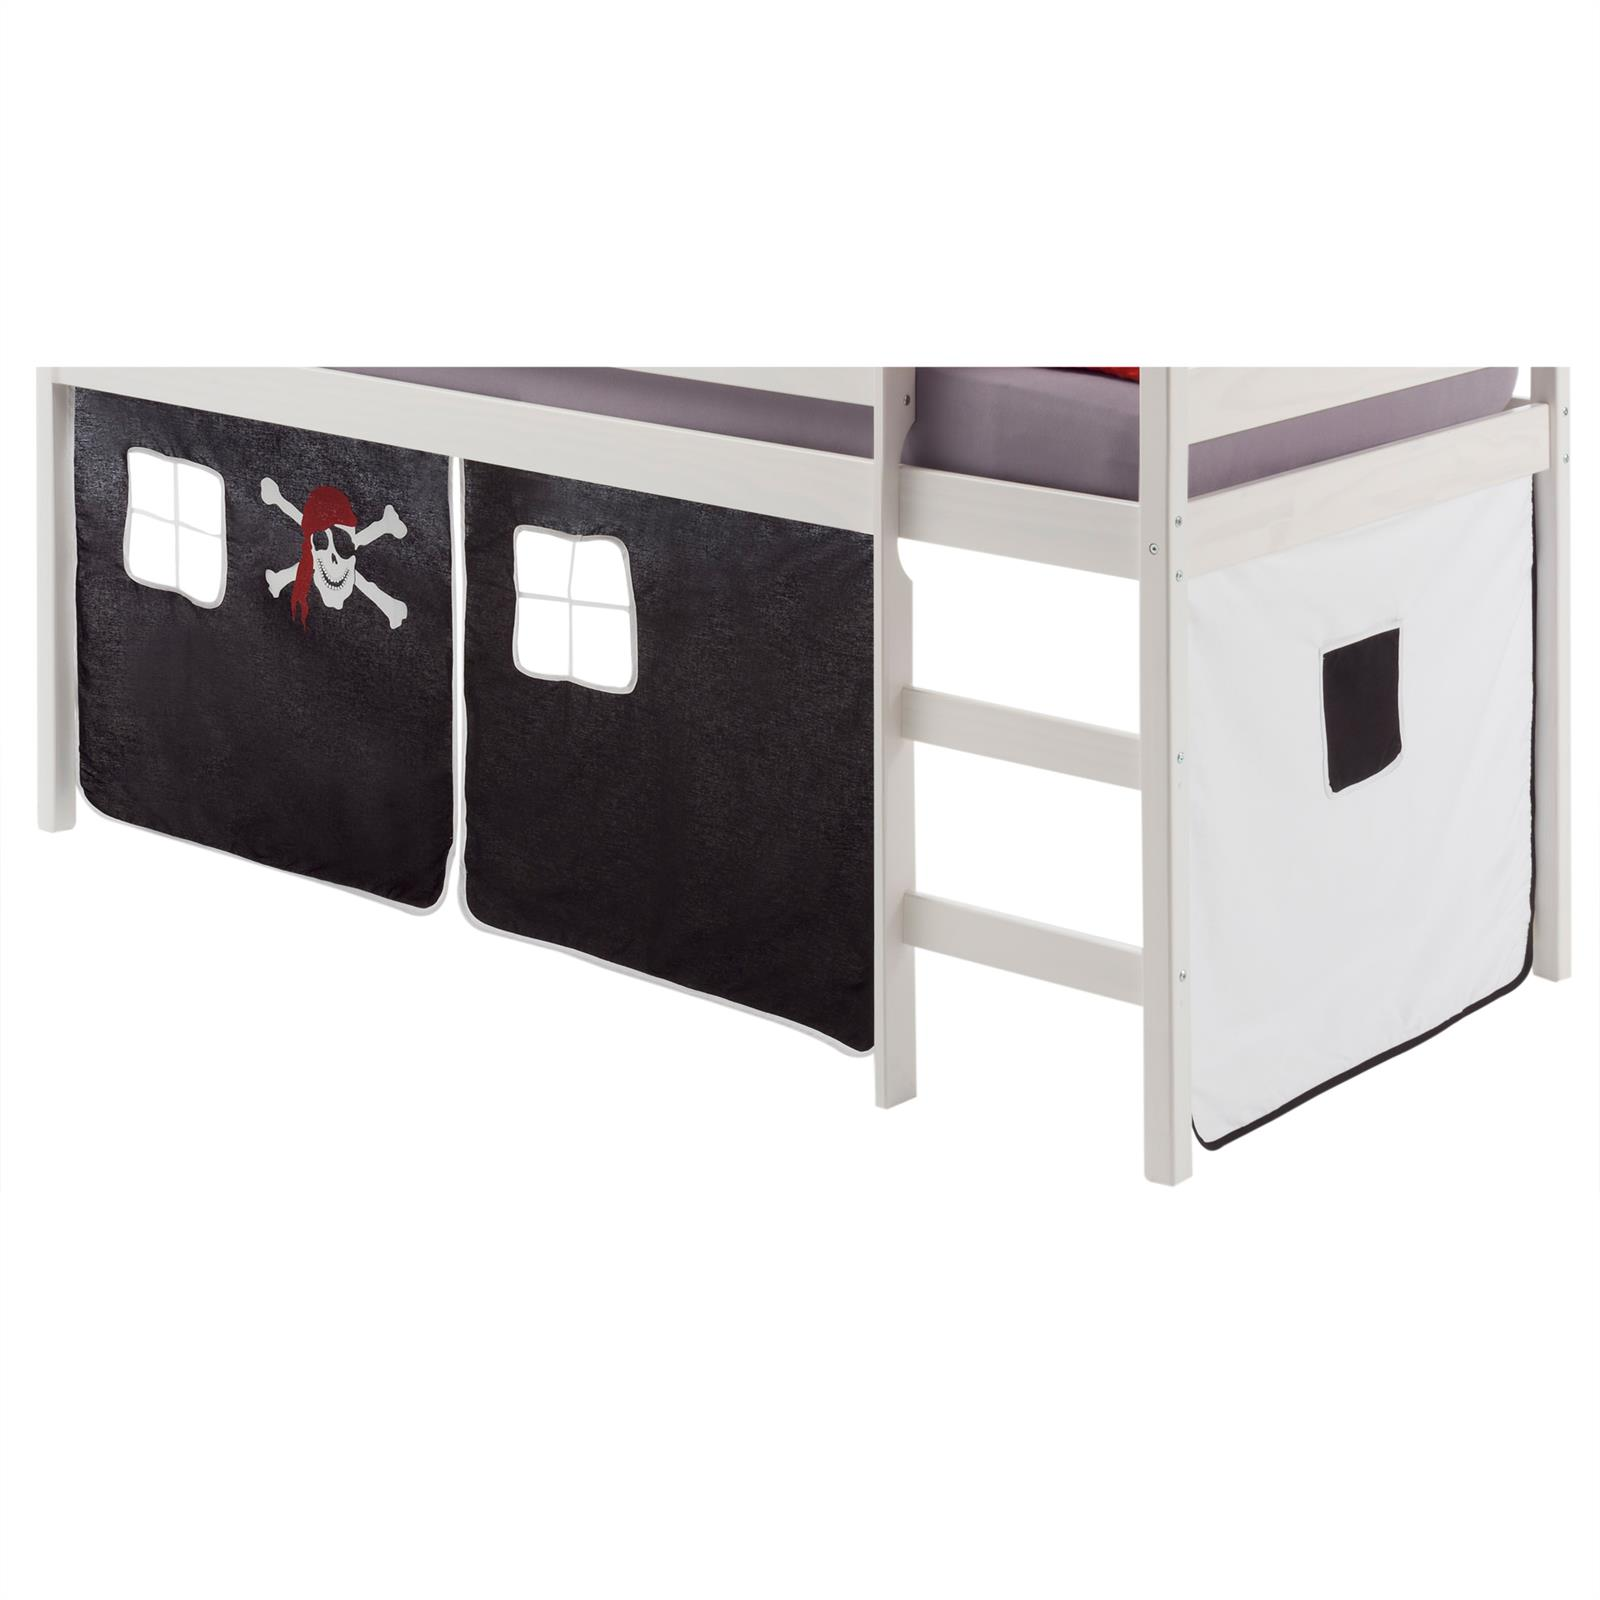 vorhang classic in schwarz weiss pirat mobilia24. Black Bedroom Furniture Sets. Home Design Ideas